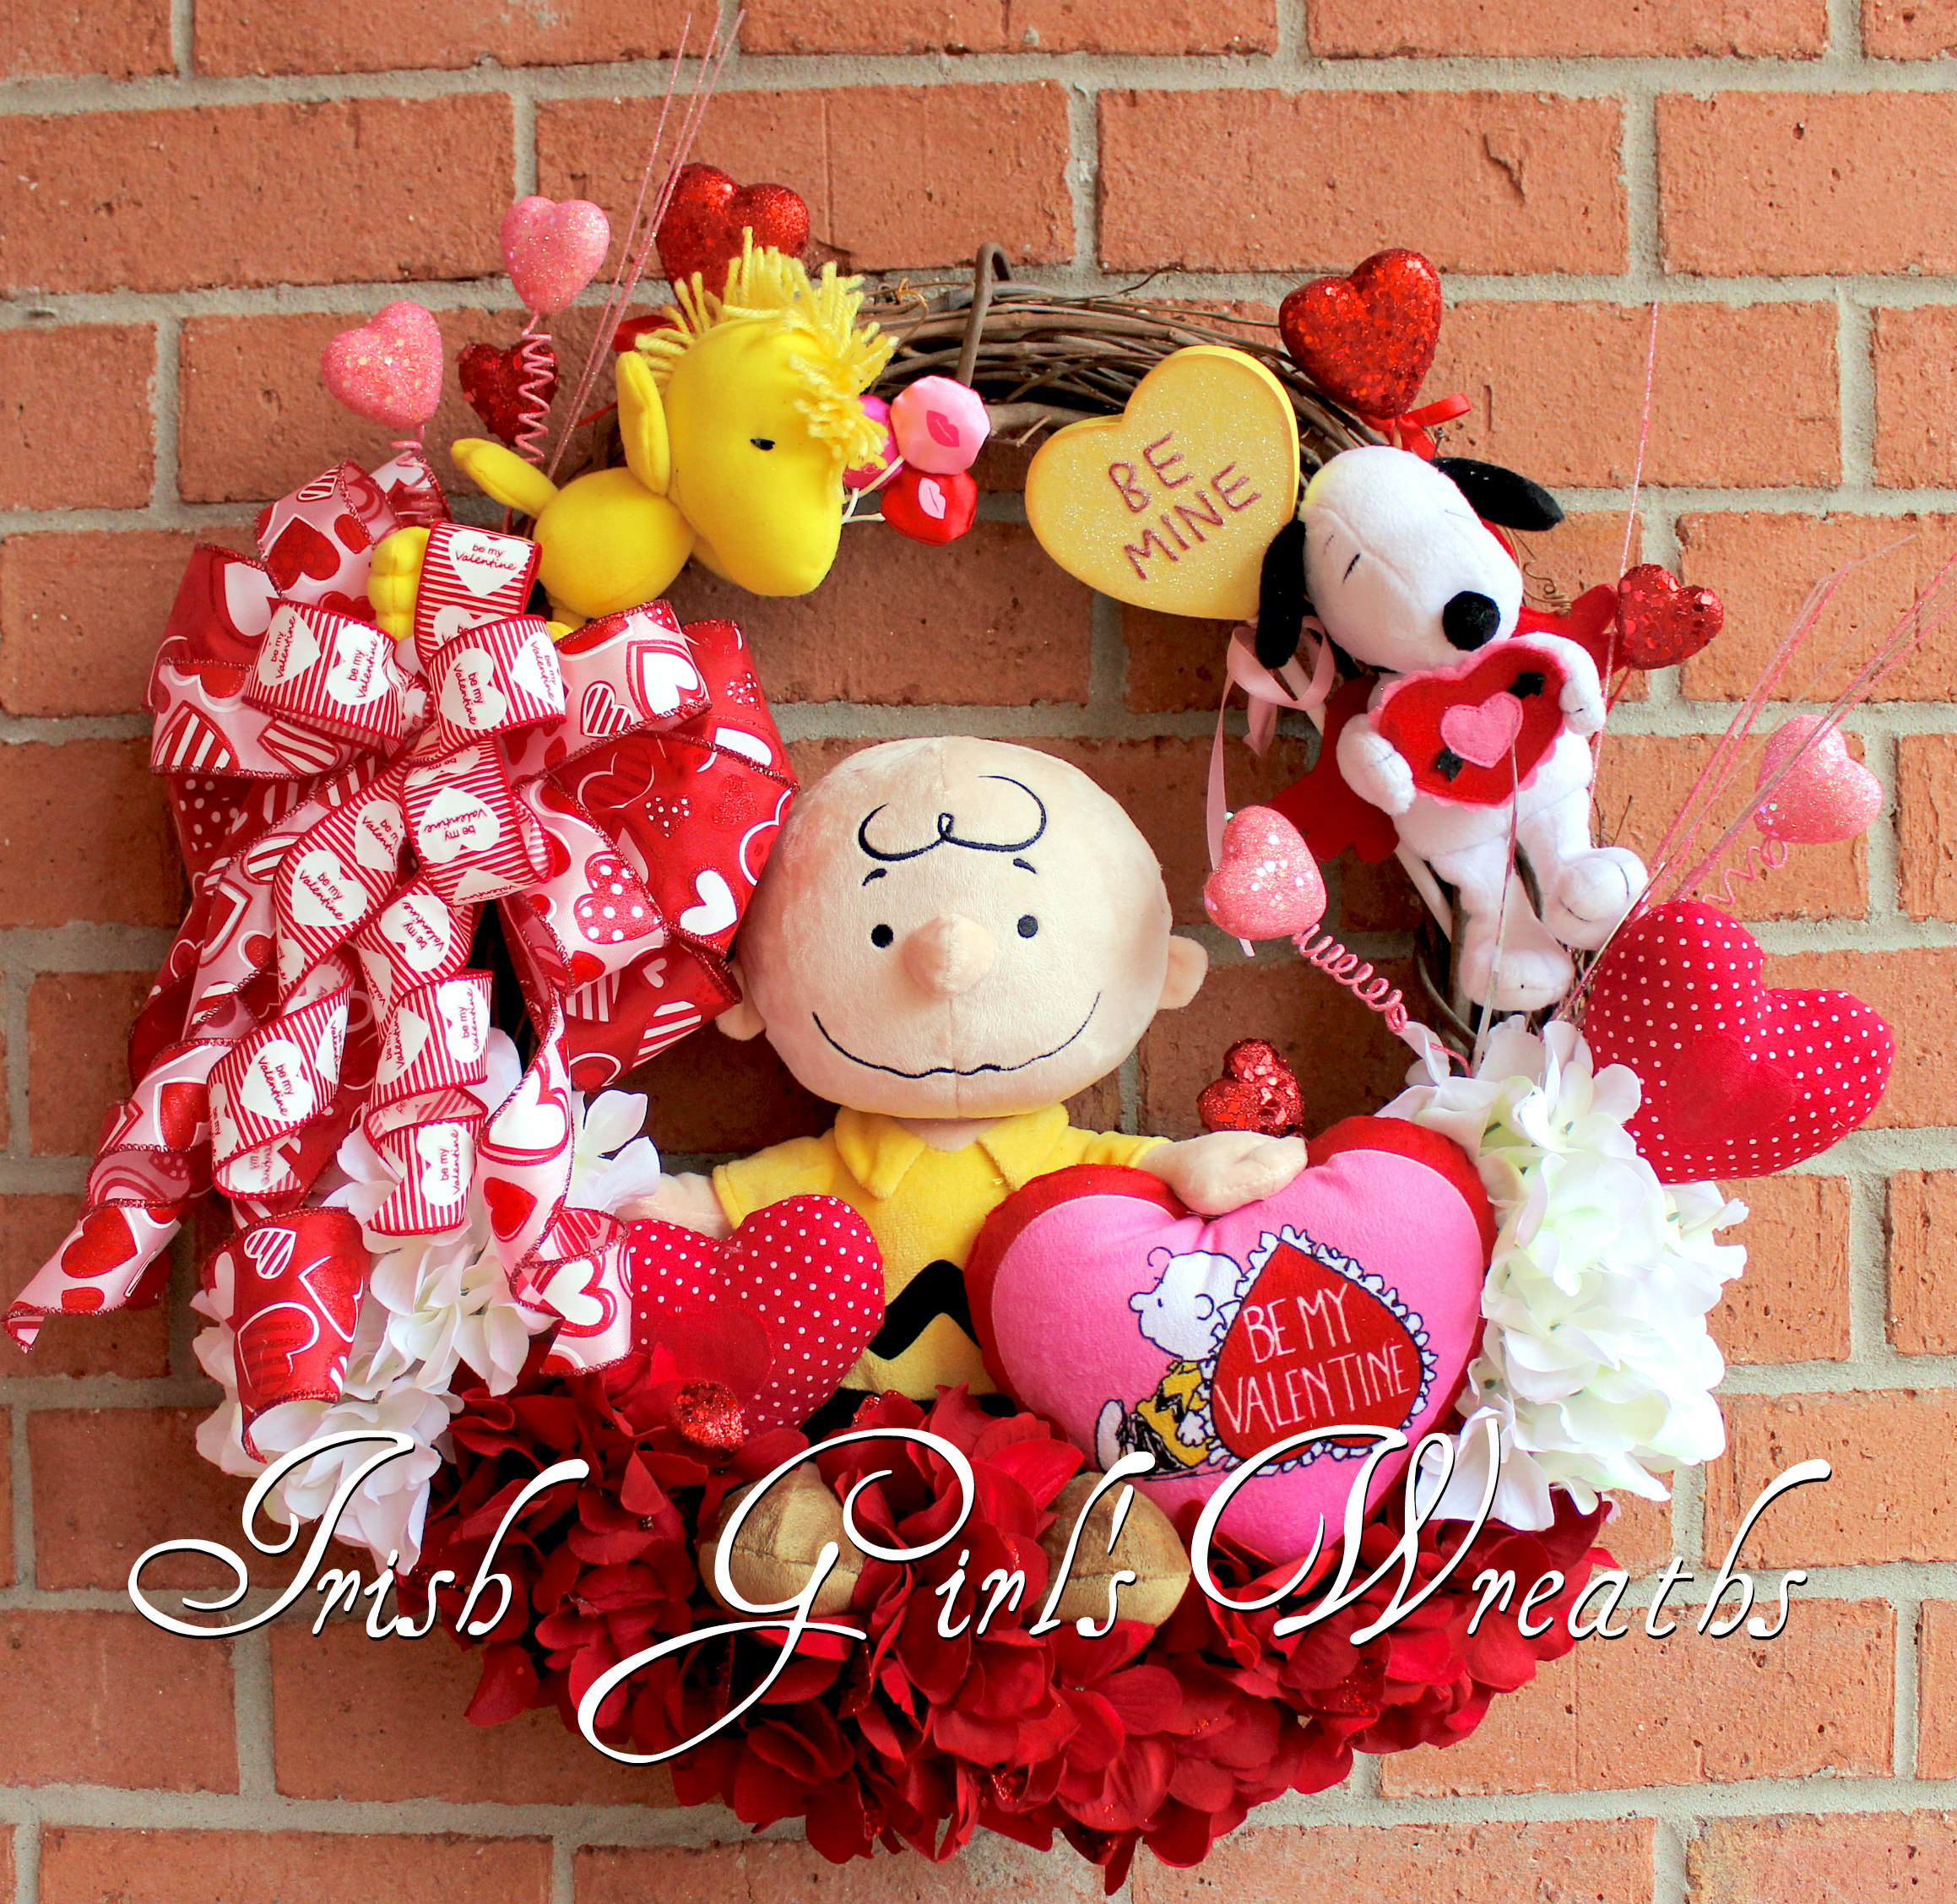 Charlie Brown, Snoopy and Woodstock Be My Valentine Wreath